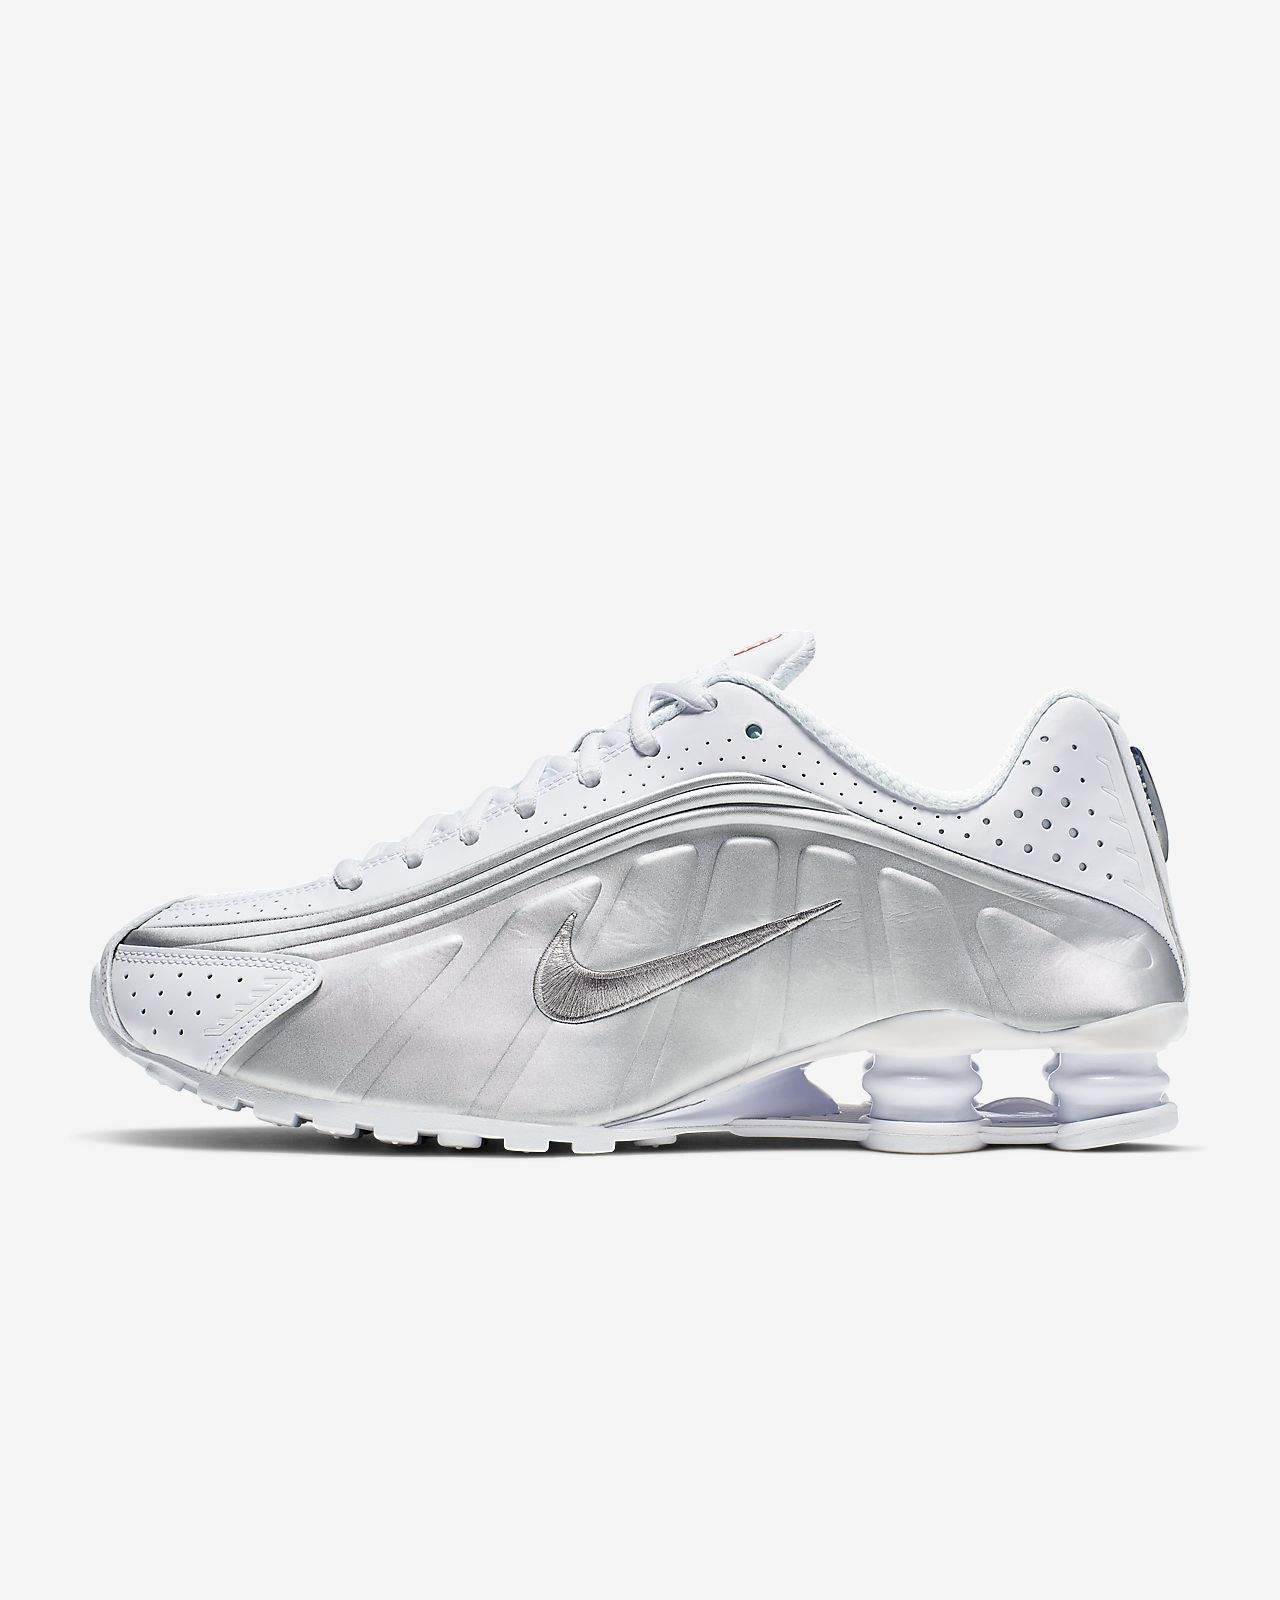 huge discount 208c9 c8fe6 ... Nike Shox R4 Men s Shoe